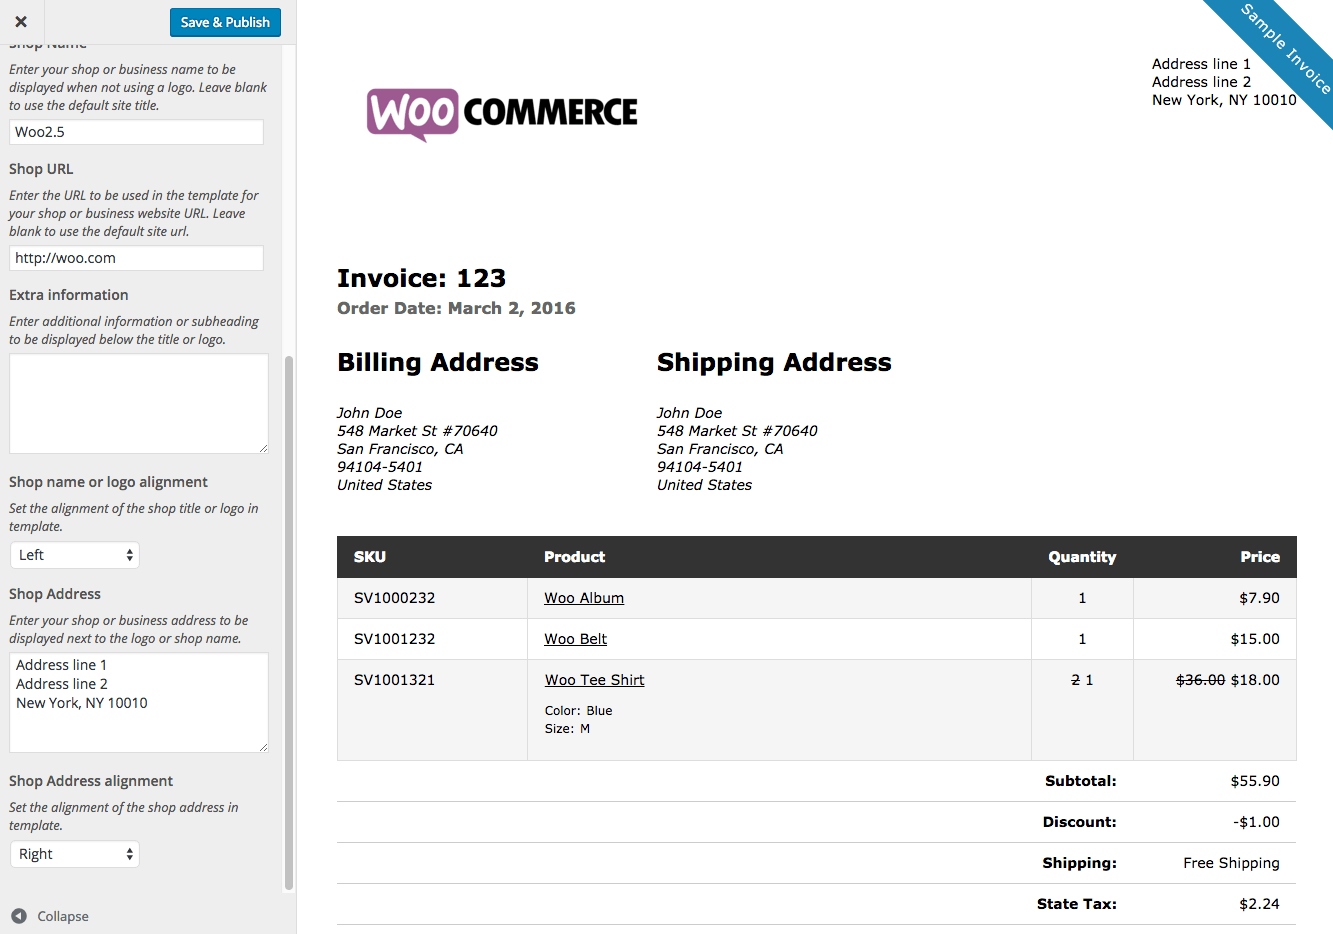 Floobydustus  Unique Woocommerce Print Invoices Amp Packing Lists  Woocommerce Docs With Goodlooking Woocommerce Print Invoices  Packing Lists Customizer With Delightful What Is A Valid Tax Invoice Also Used Car Invoice Template In Addition Easy Invoices Free And Sugarcrm Invoice As Well As Format Of Invoice Additionally Uk Invoice Sample From Docswoocommercecom With Floobydustus  Goodlooking Woocommerce Print Invoices Amp Packing Lists  Woocommerce Docs With Delightful Woocommerce Print Invoices  Packing Lists Customizer And Unique What Is A Valid Tax Invoice Also Used Car Invoice Template In Addition Easy Invoices Free From Docswoocommercecom